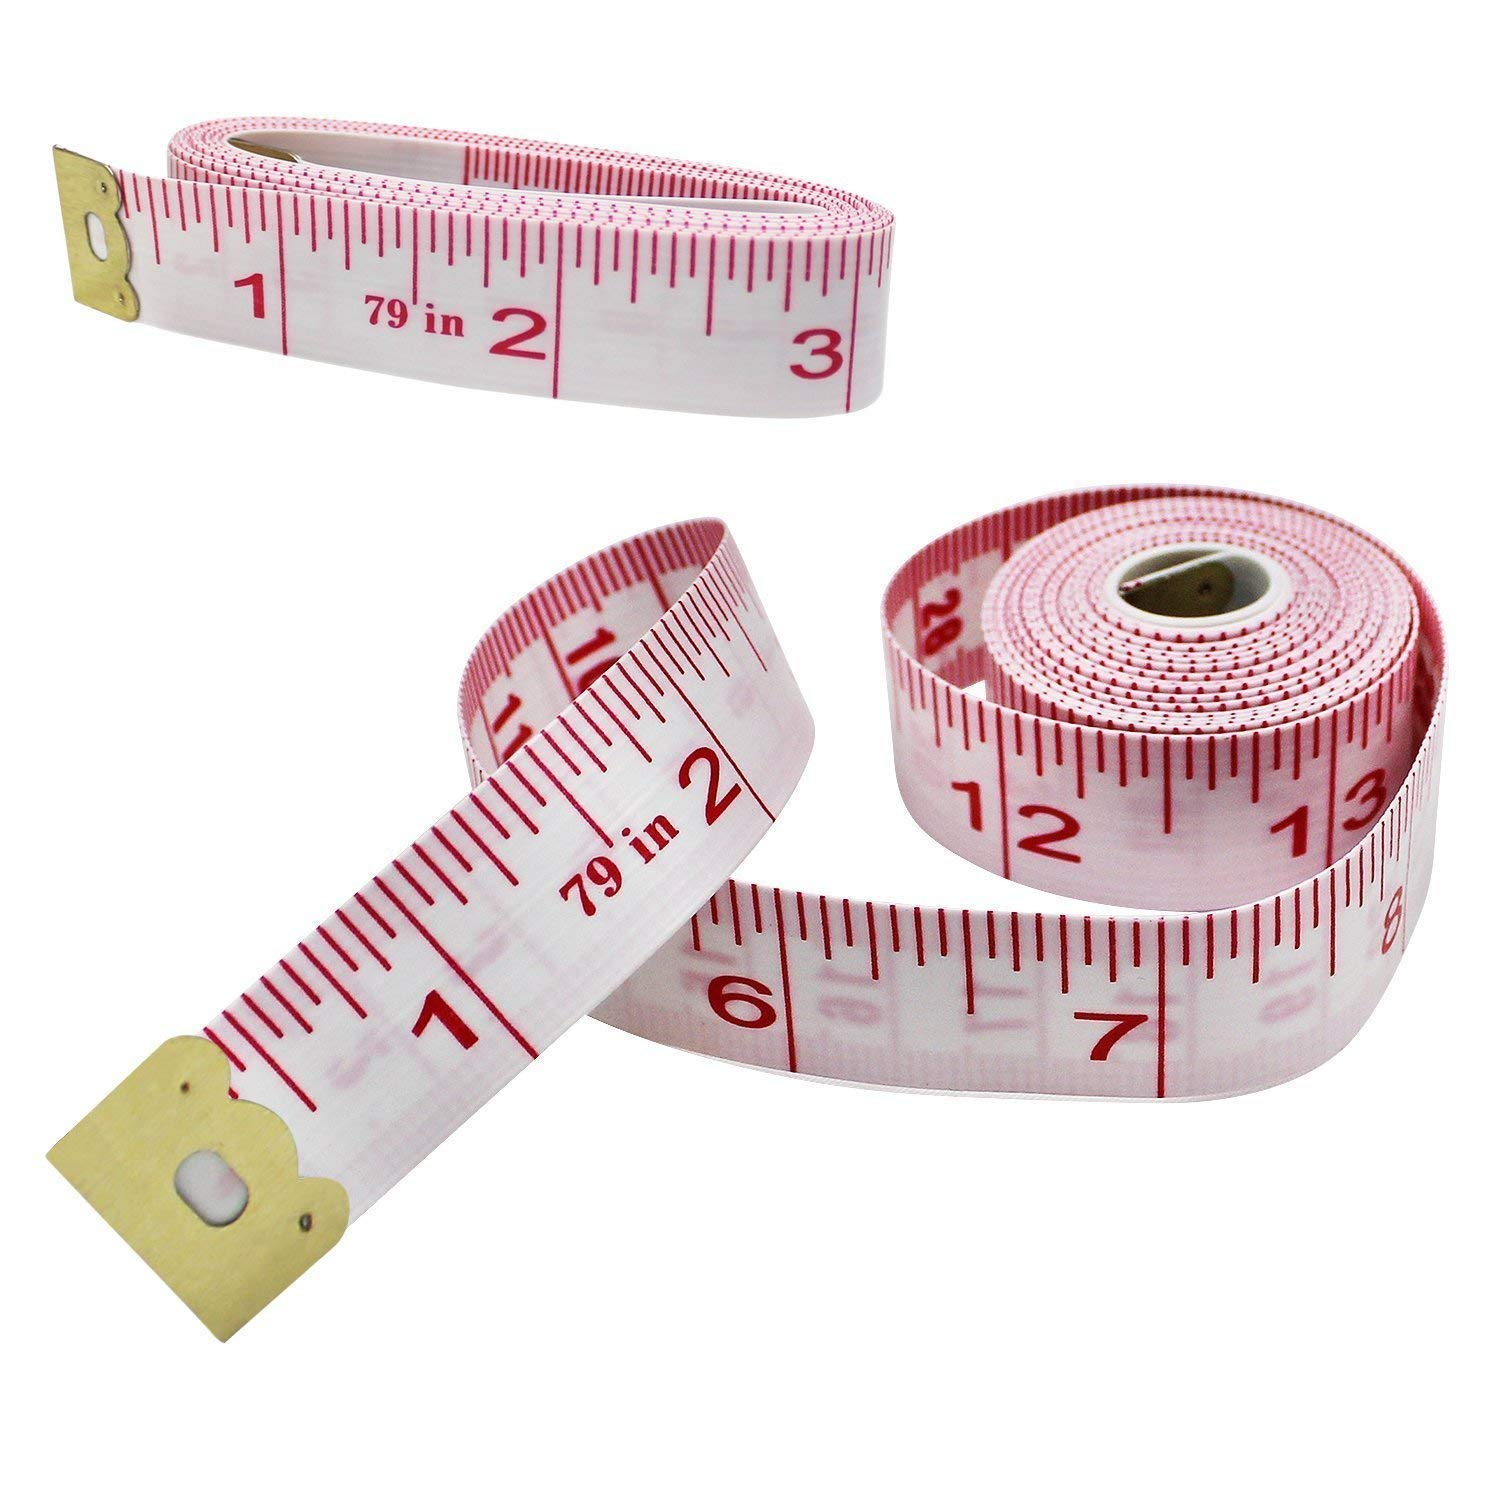 Measuring Tape for Body Measurements Flexible Fibre Glass Reverse Side Tailor Cloth Ruler 60''/150cm Bulk Prime Dressmaker Rulers by drtulz